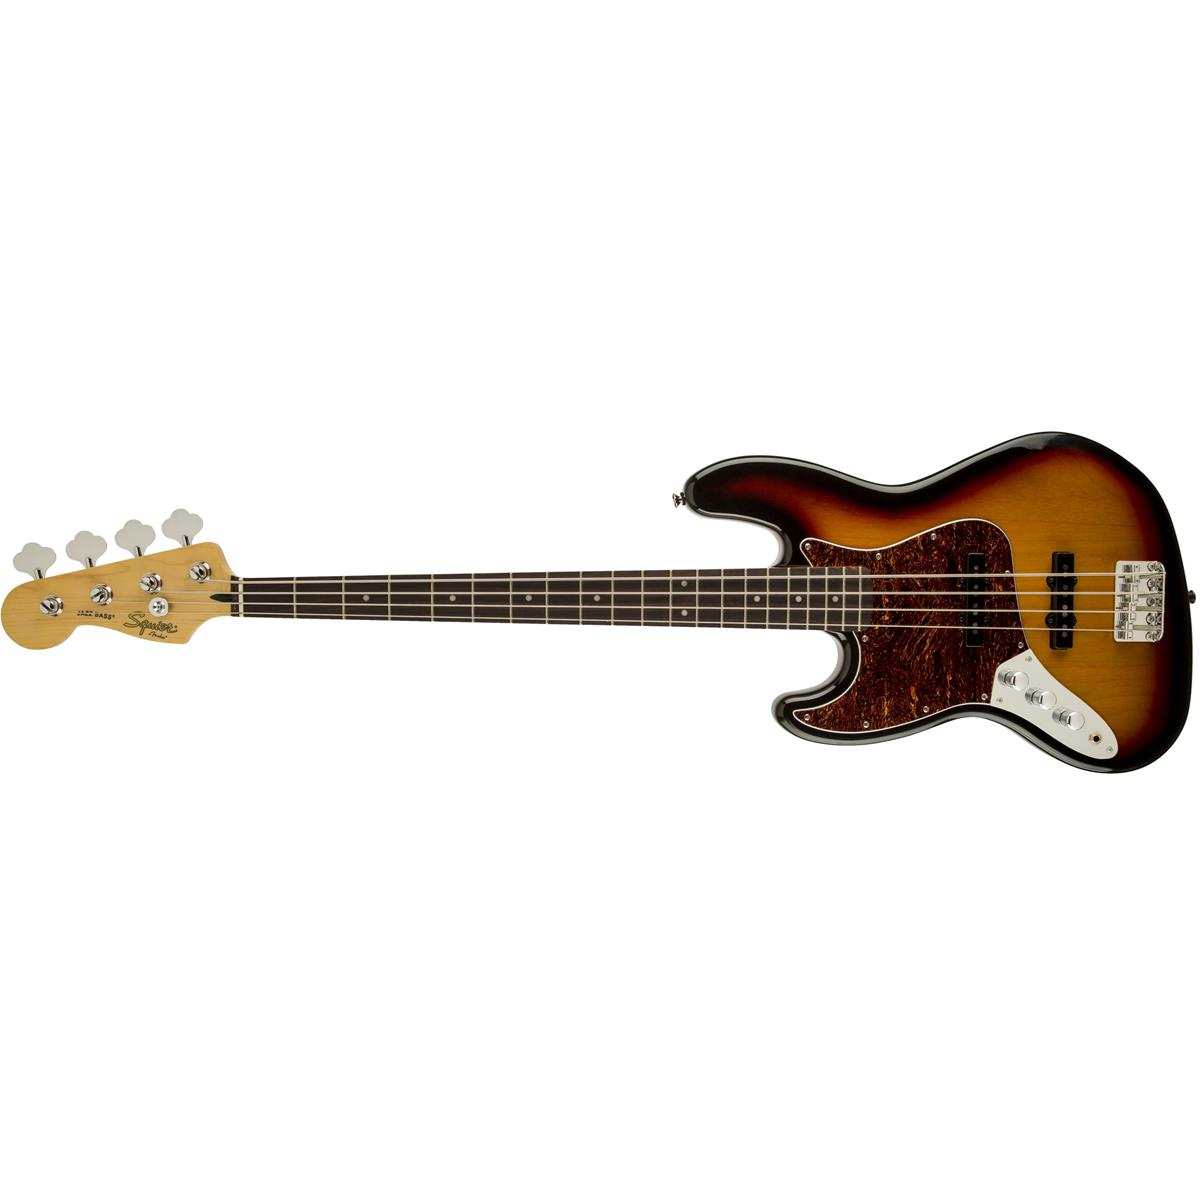 SQUIER-VINTAGE-MODIFIED-JAZZ-BASS-MANCINO-LH-3TS-0306620500-sku-16060